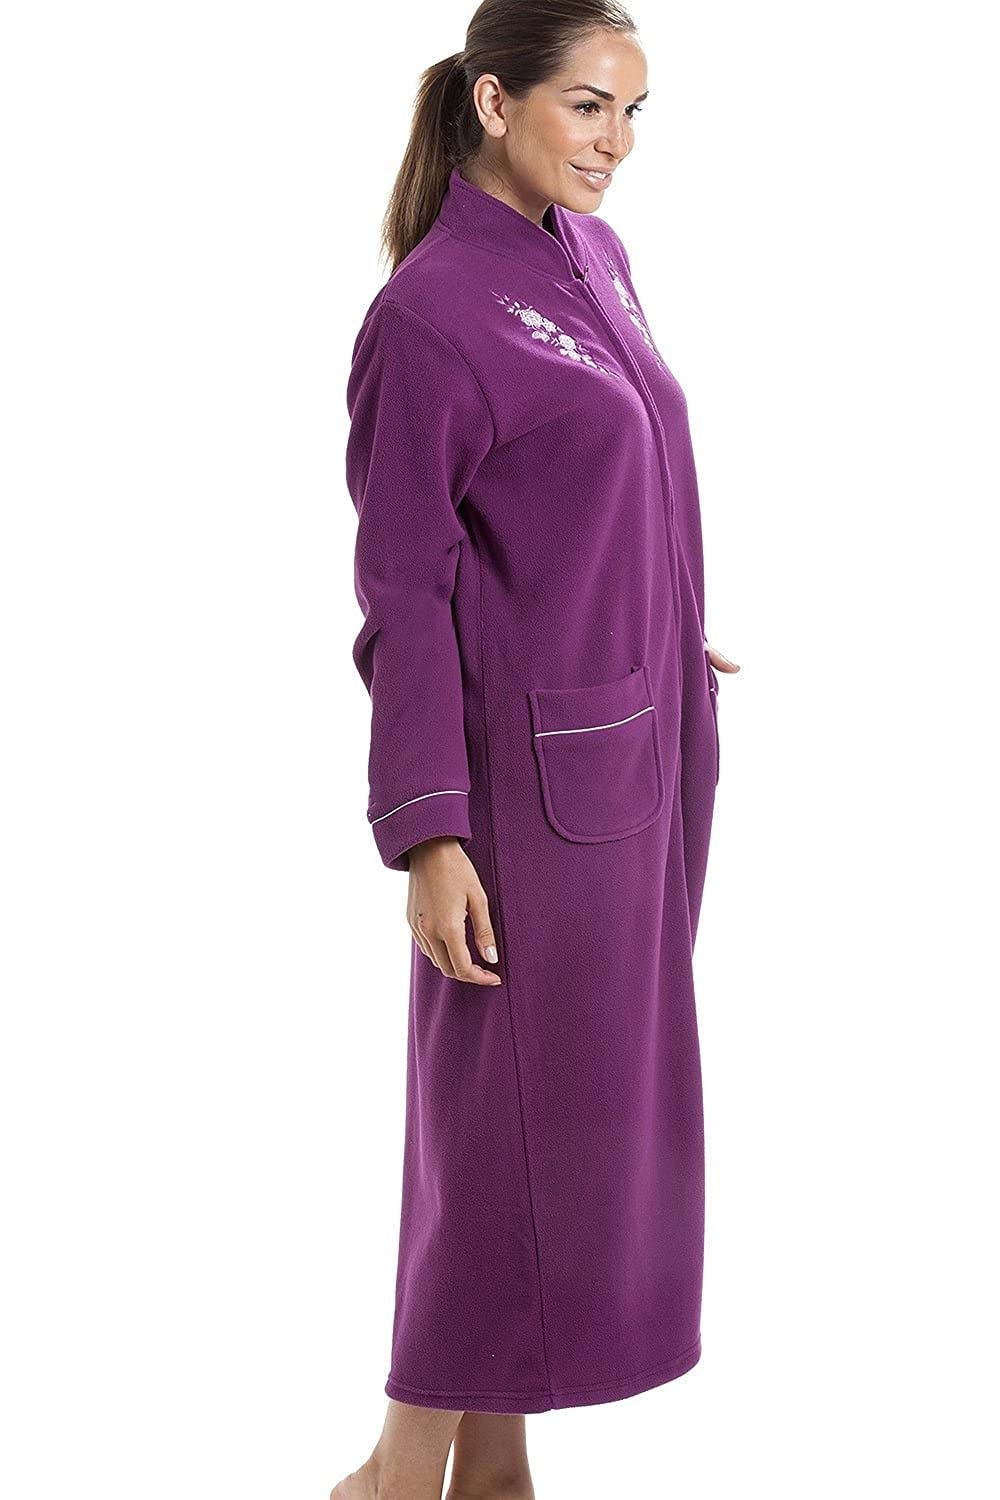 3e949d99db Camille Womens Ladies Soft Warm Fleece Purple Zip Up Front Housecoat 10 12   Camille  Amazon.co.uk  Clothing